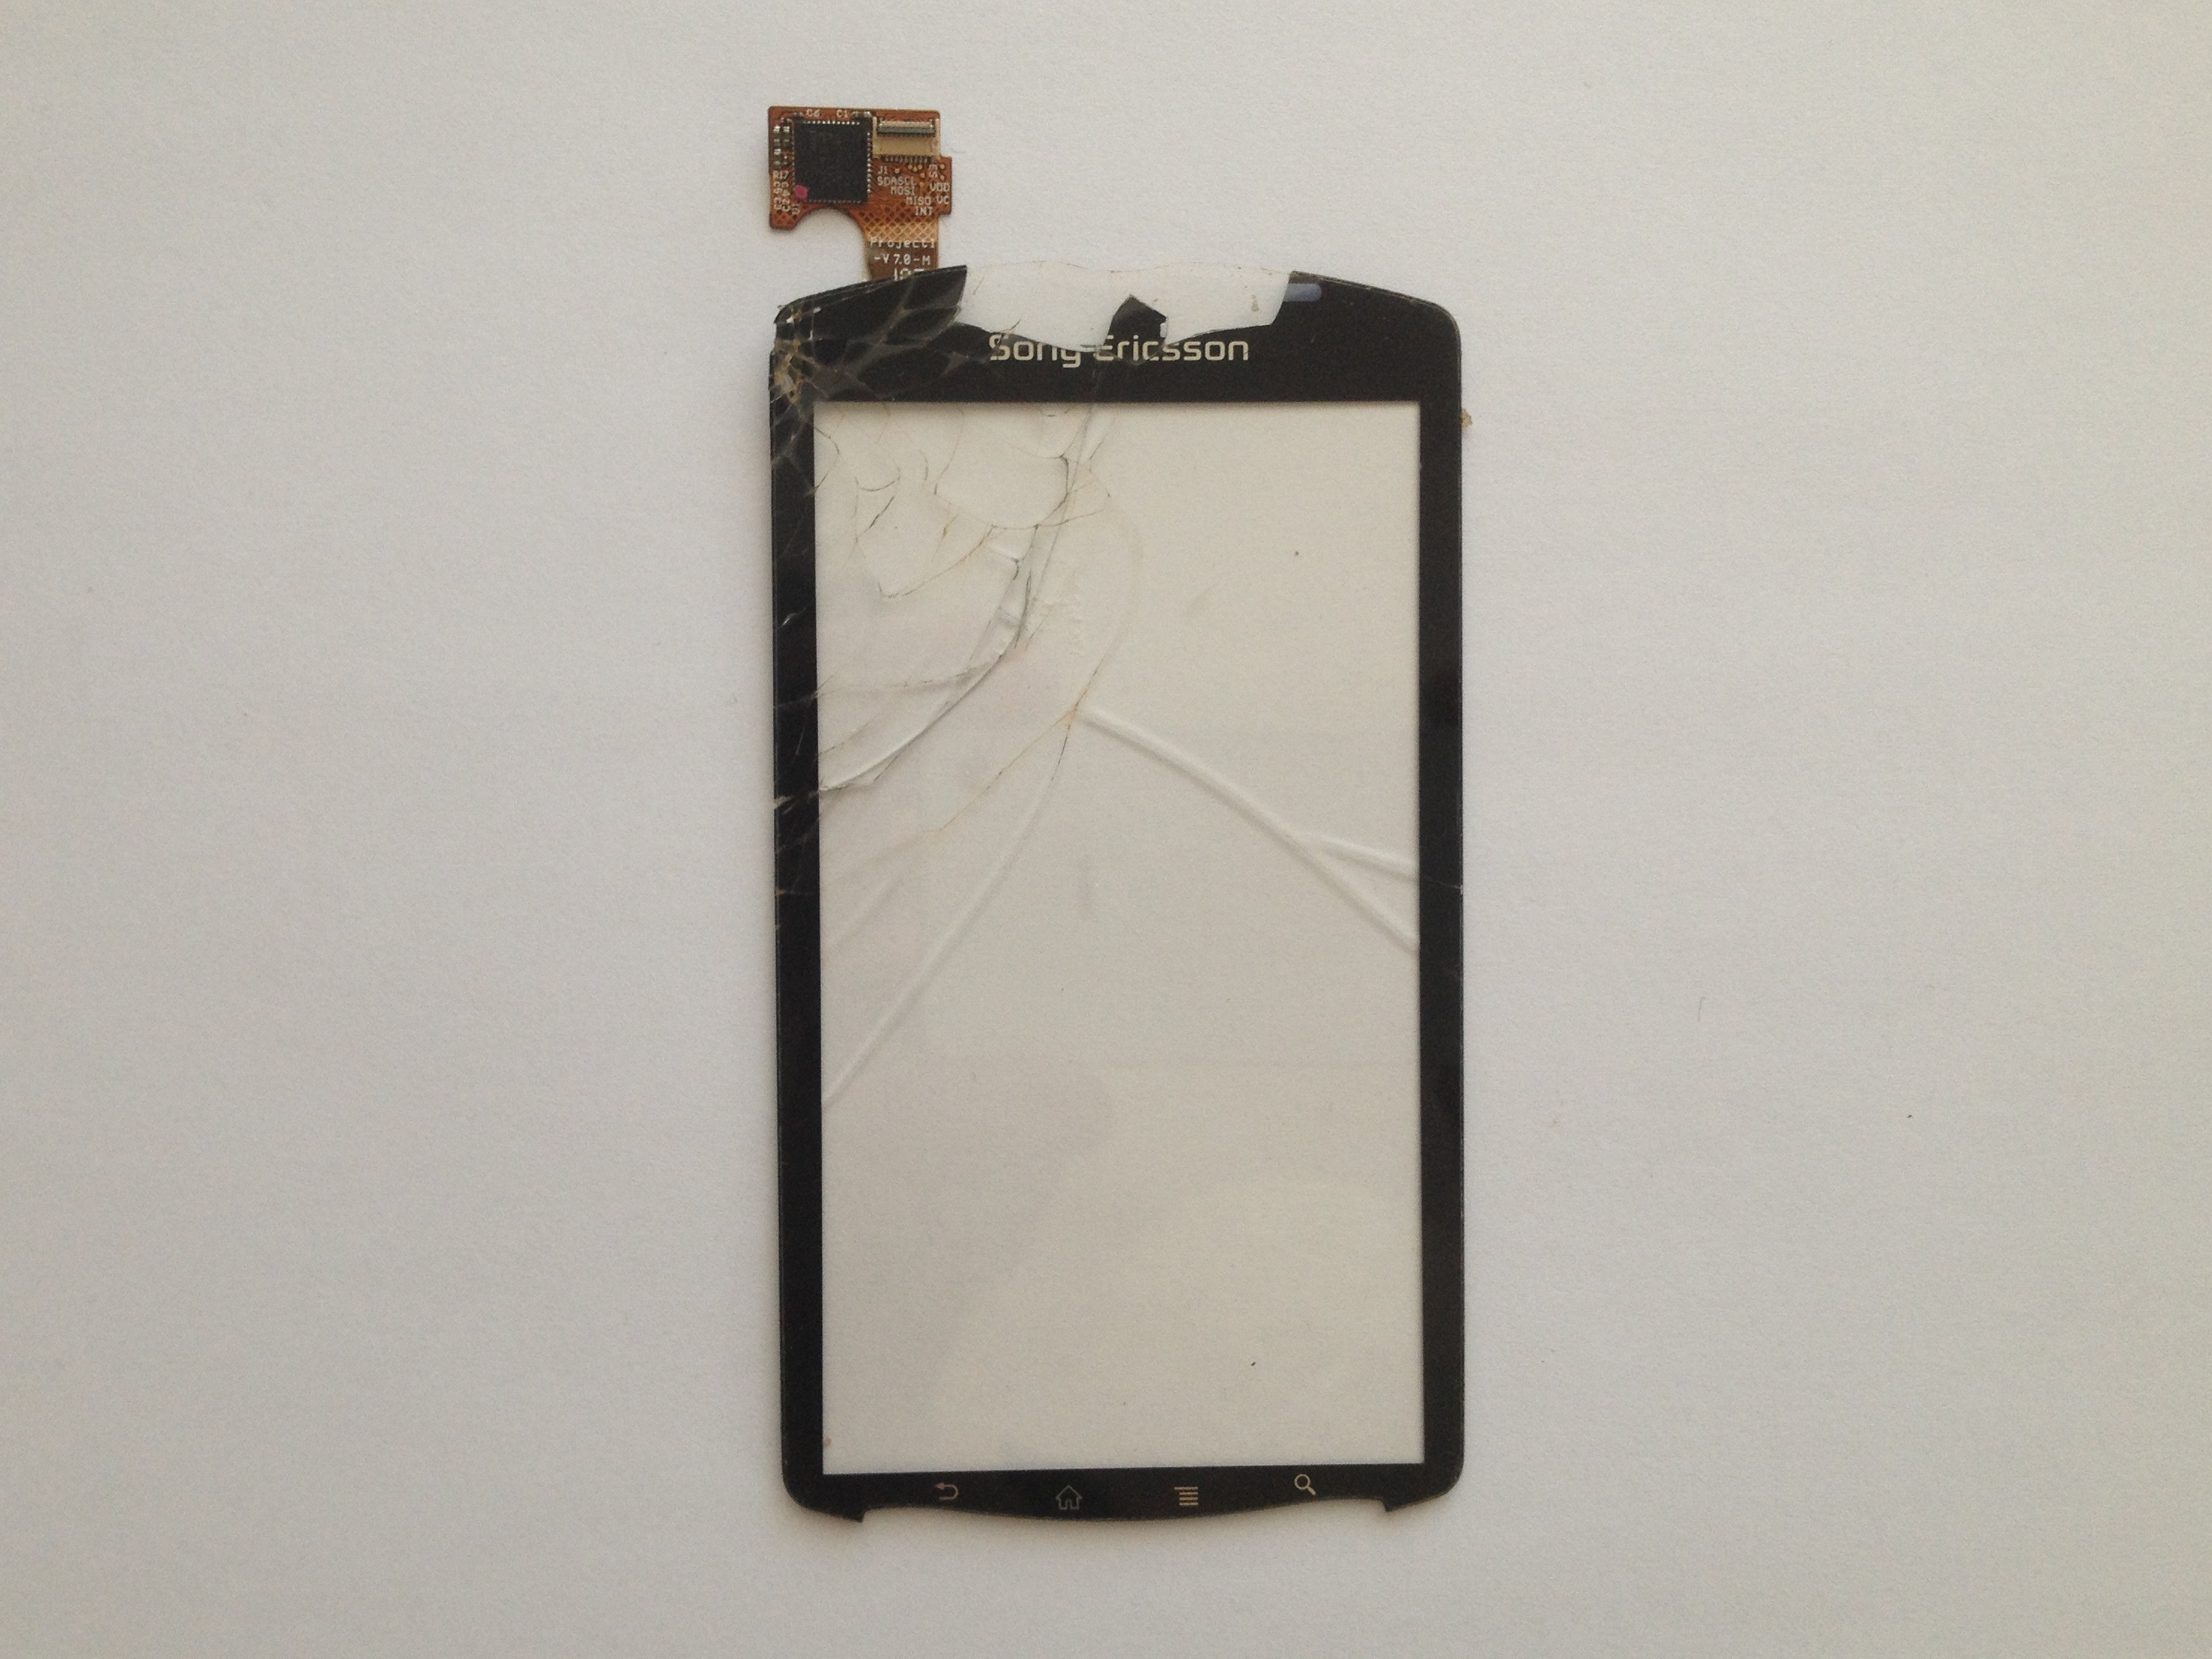 Sony Ericsson Xperia Play Touch Screen Glass Digitizer Replacement Touchscreen Ifixit Repair Guide